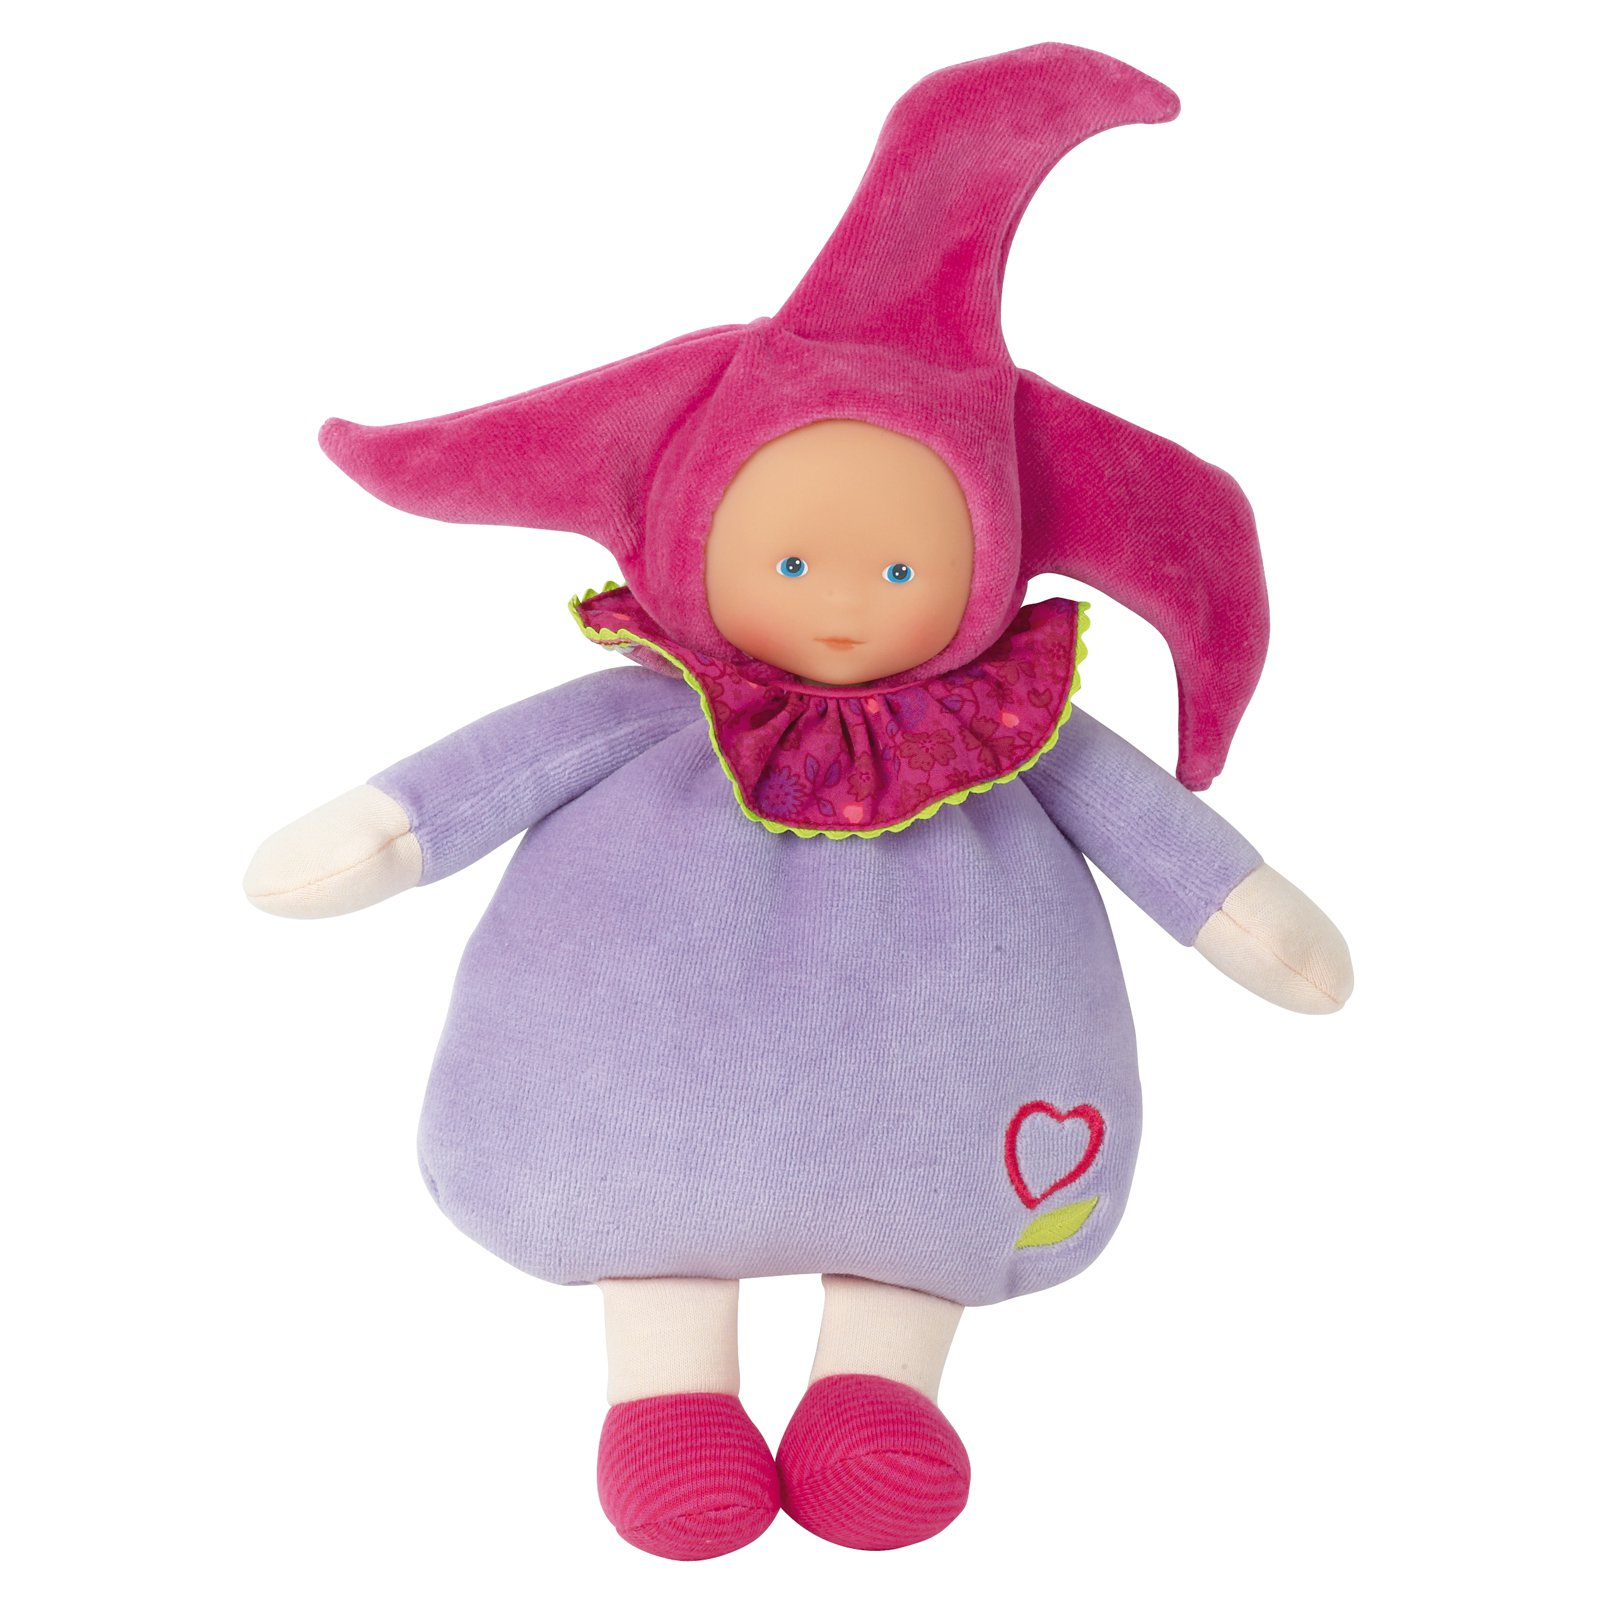 Corolle Barbicorolle Elf Grenadines Heart 9.5 in. Doll